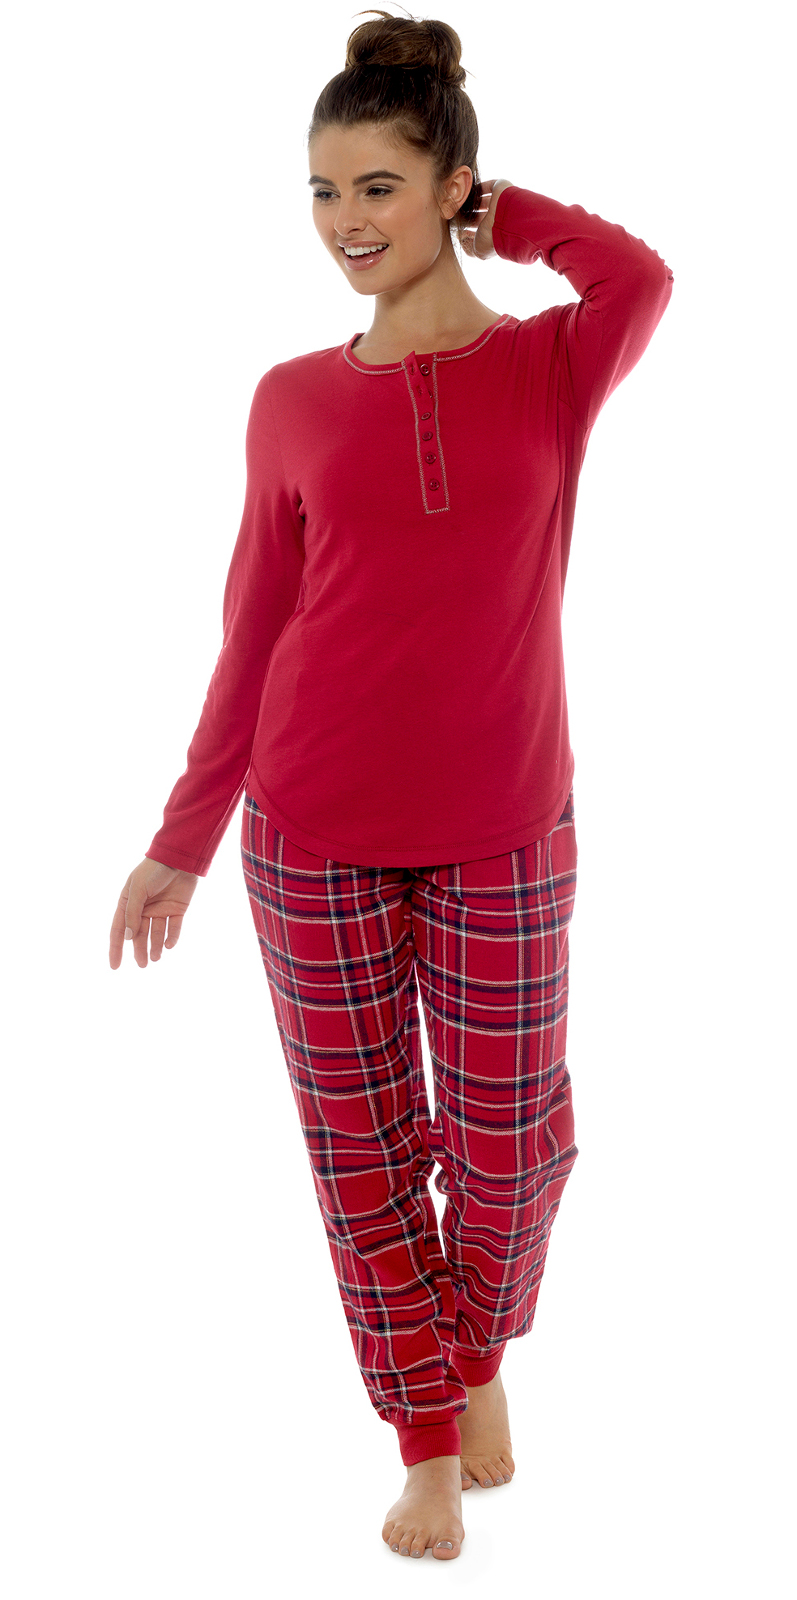 Womens Pyjamas Full Length 2 Piece Set Top + Cuffed Bottoms Lounge ... 0e6a7707e